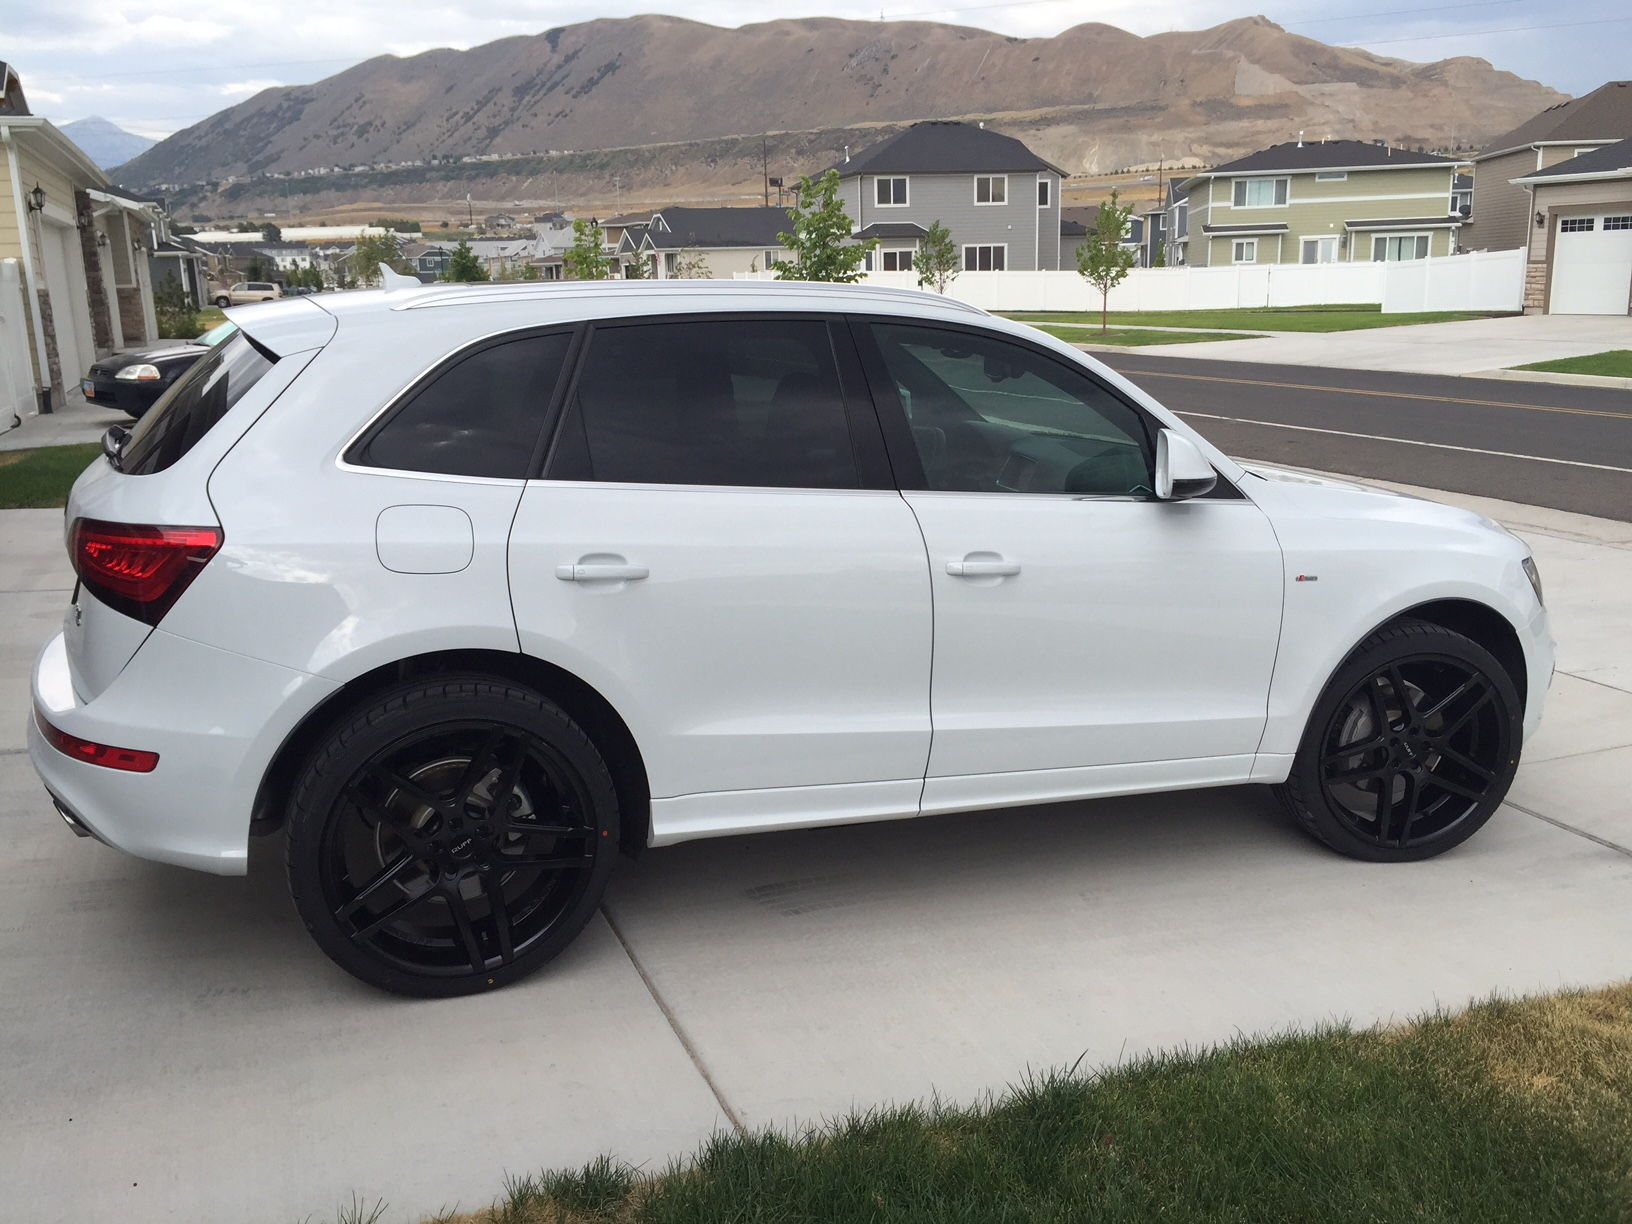 New To Us Q5 S Line Audiworld Forums